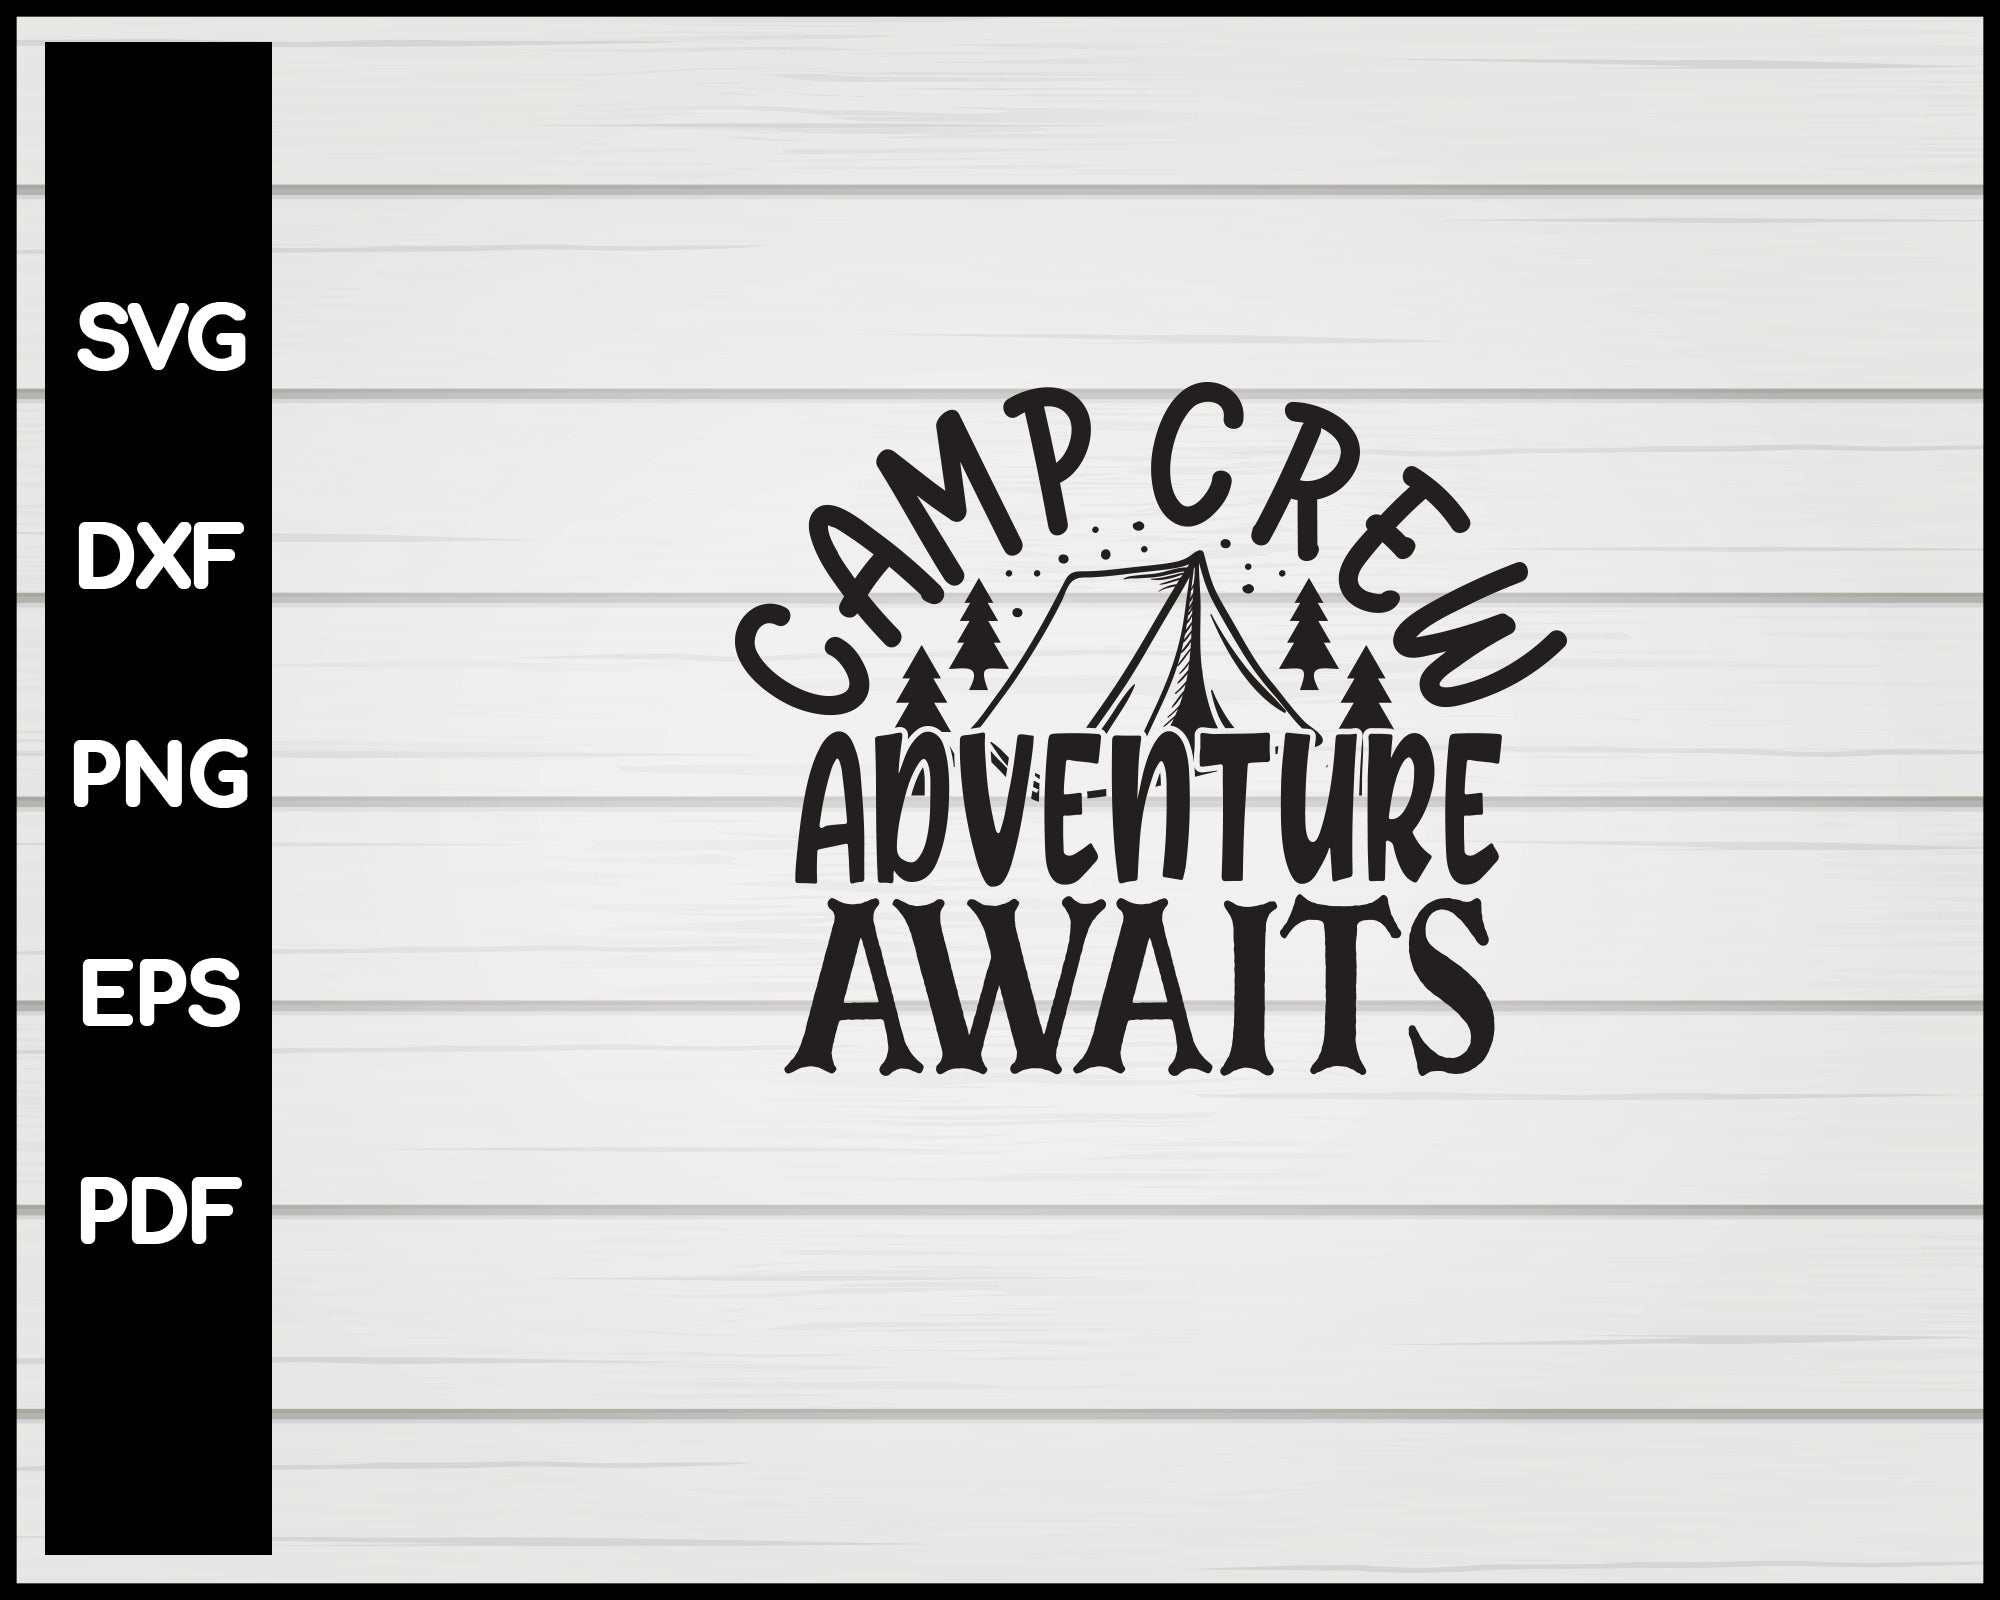 Camp Crew Adventure Awaits svg Cut File For Cricut Silhouette eps png dxf Printable Files